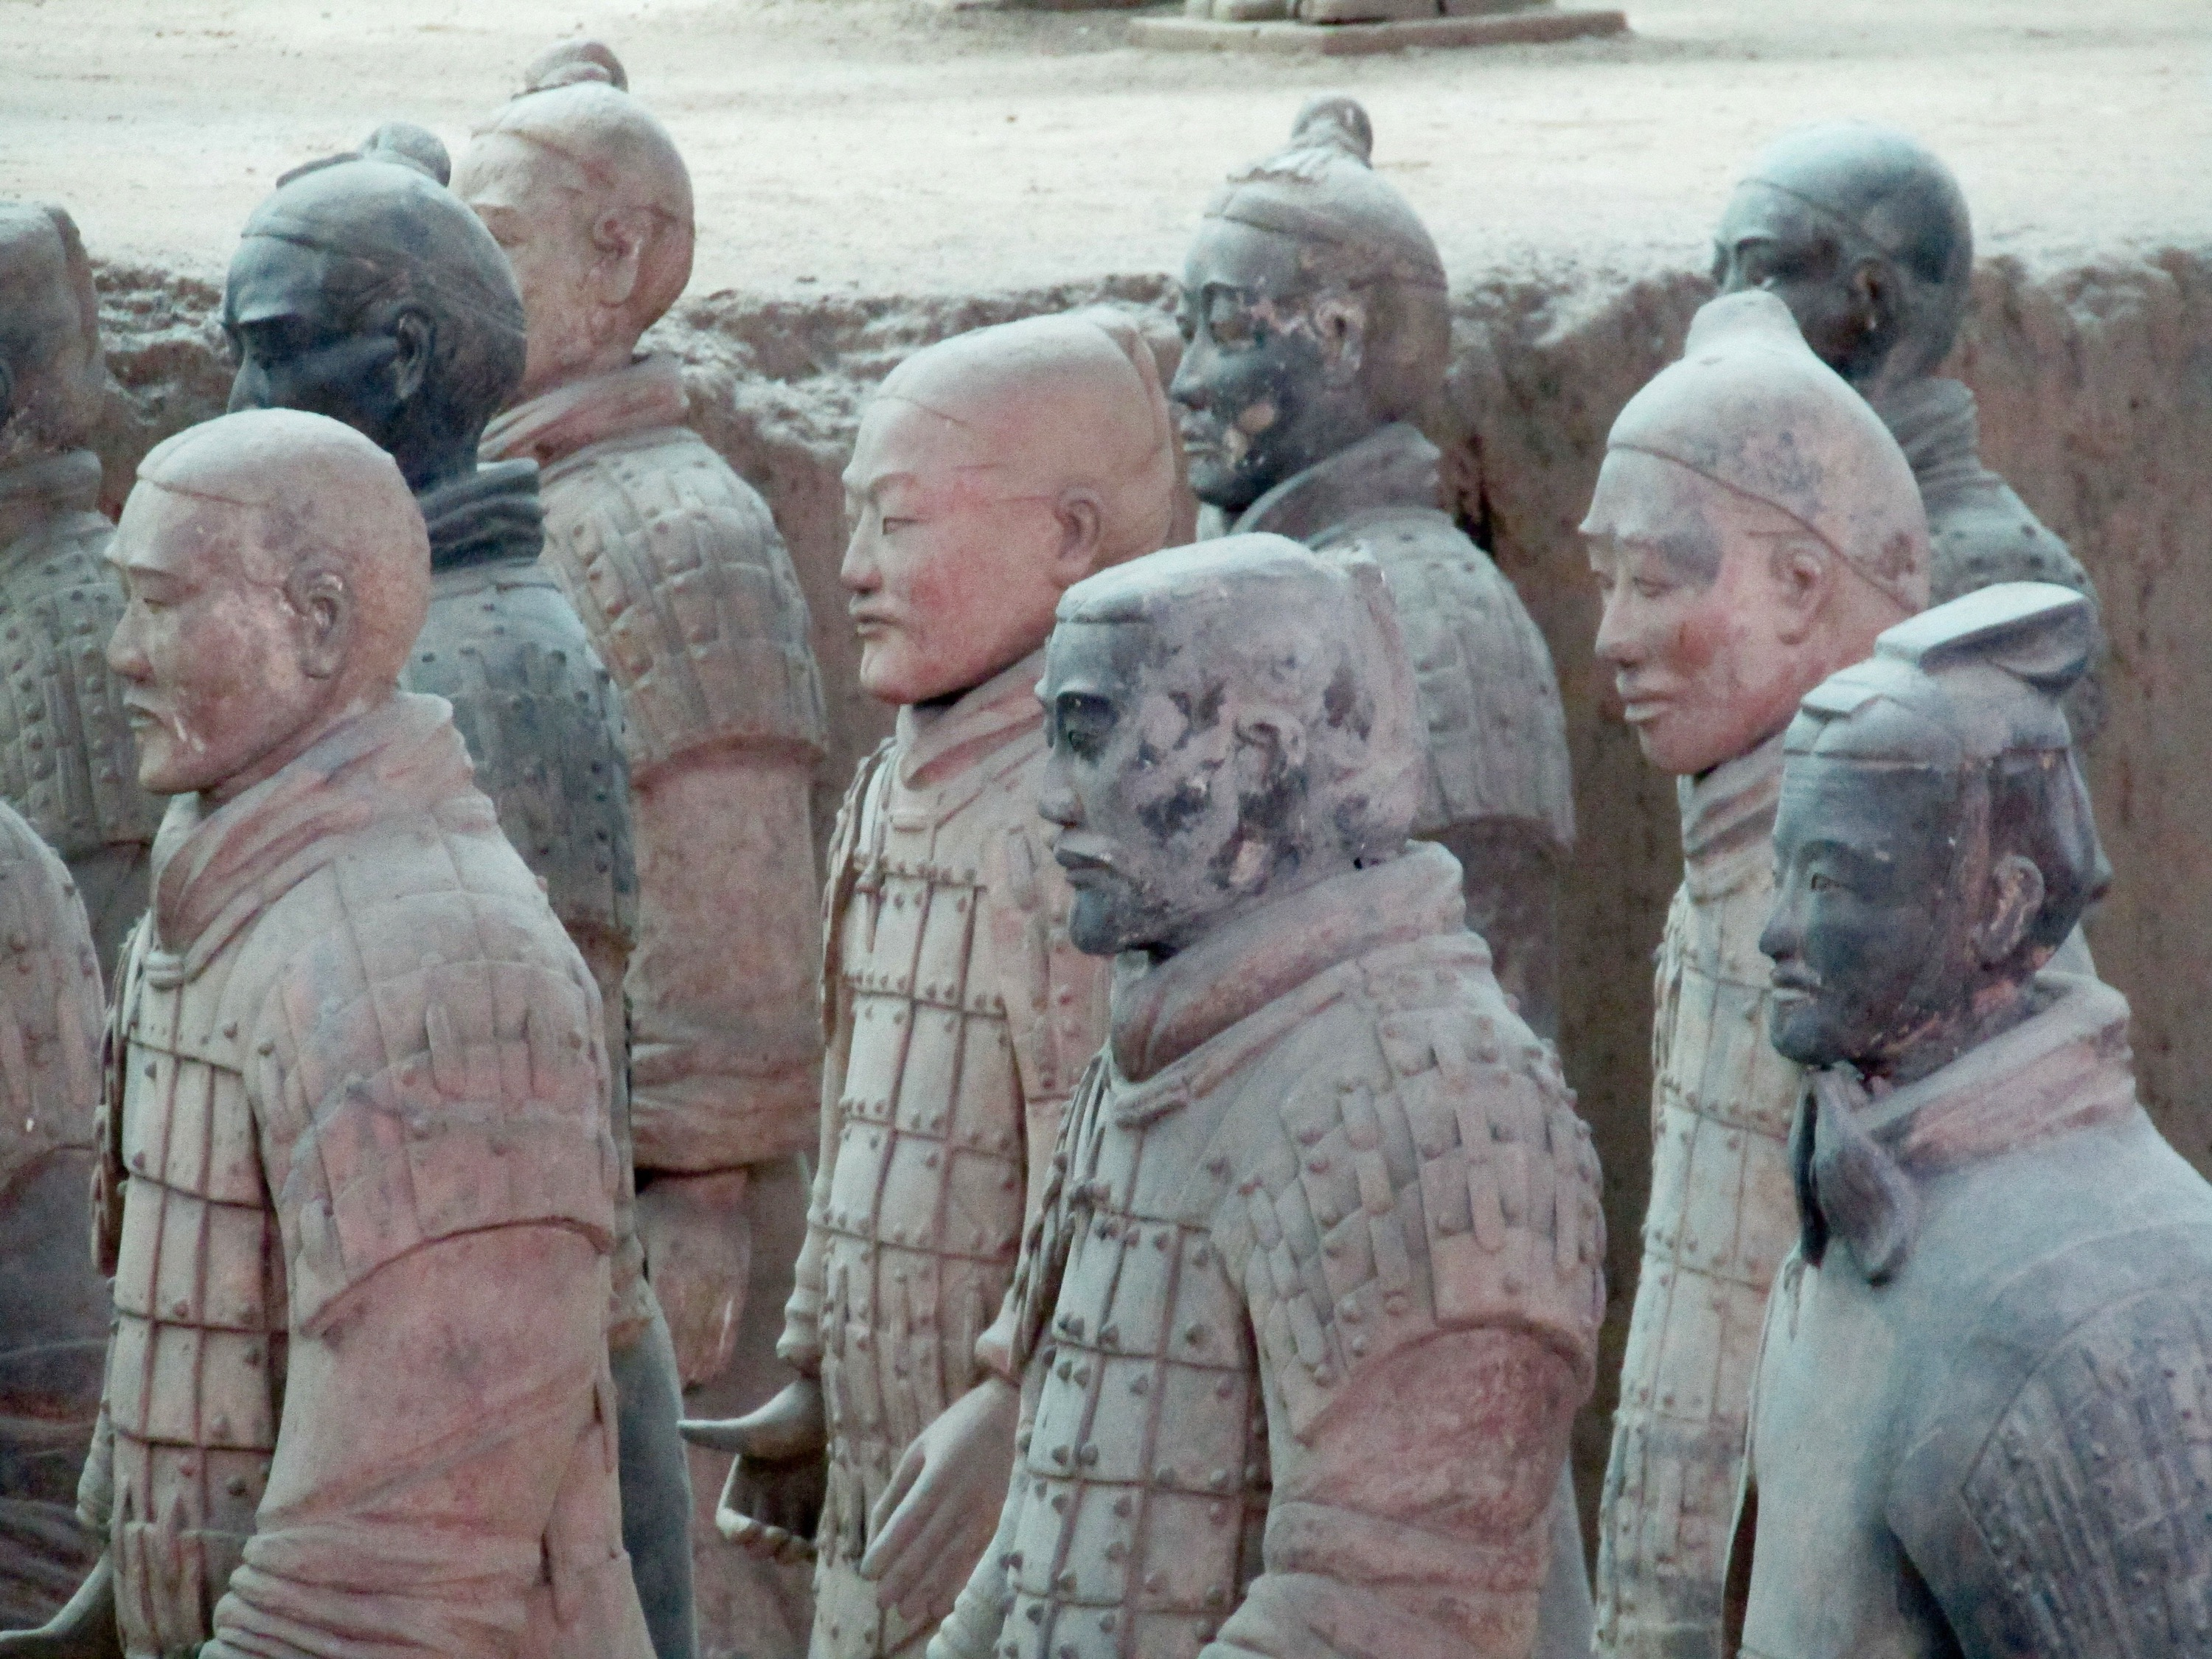 The faces and bodies of each soldier in the army is unique. They were constructed using extra-strong local clay that could be fired at twice the temperature of clays imported from Beijing. The resulting soldiers weigh between 200-300 lbs. each. Archeologists are still piecing together the soldiers and have restored around 2,000 of the 6,000-plus member army.